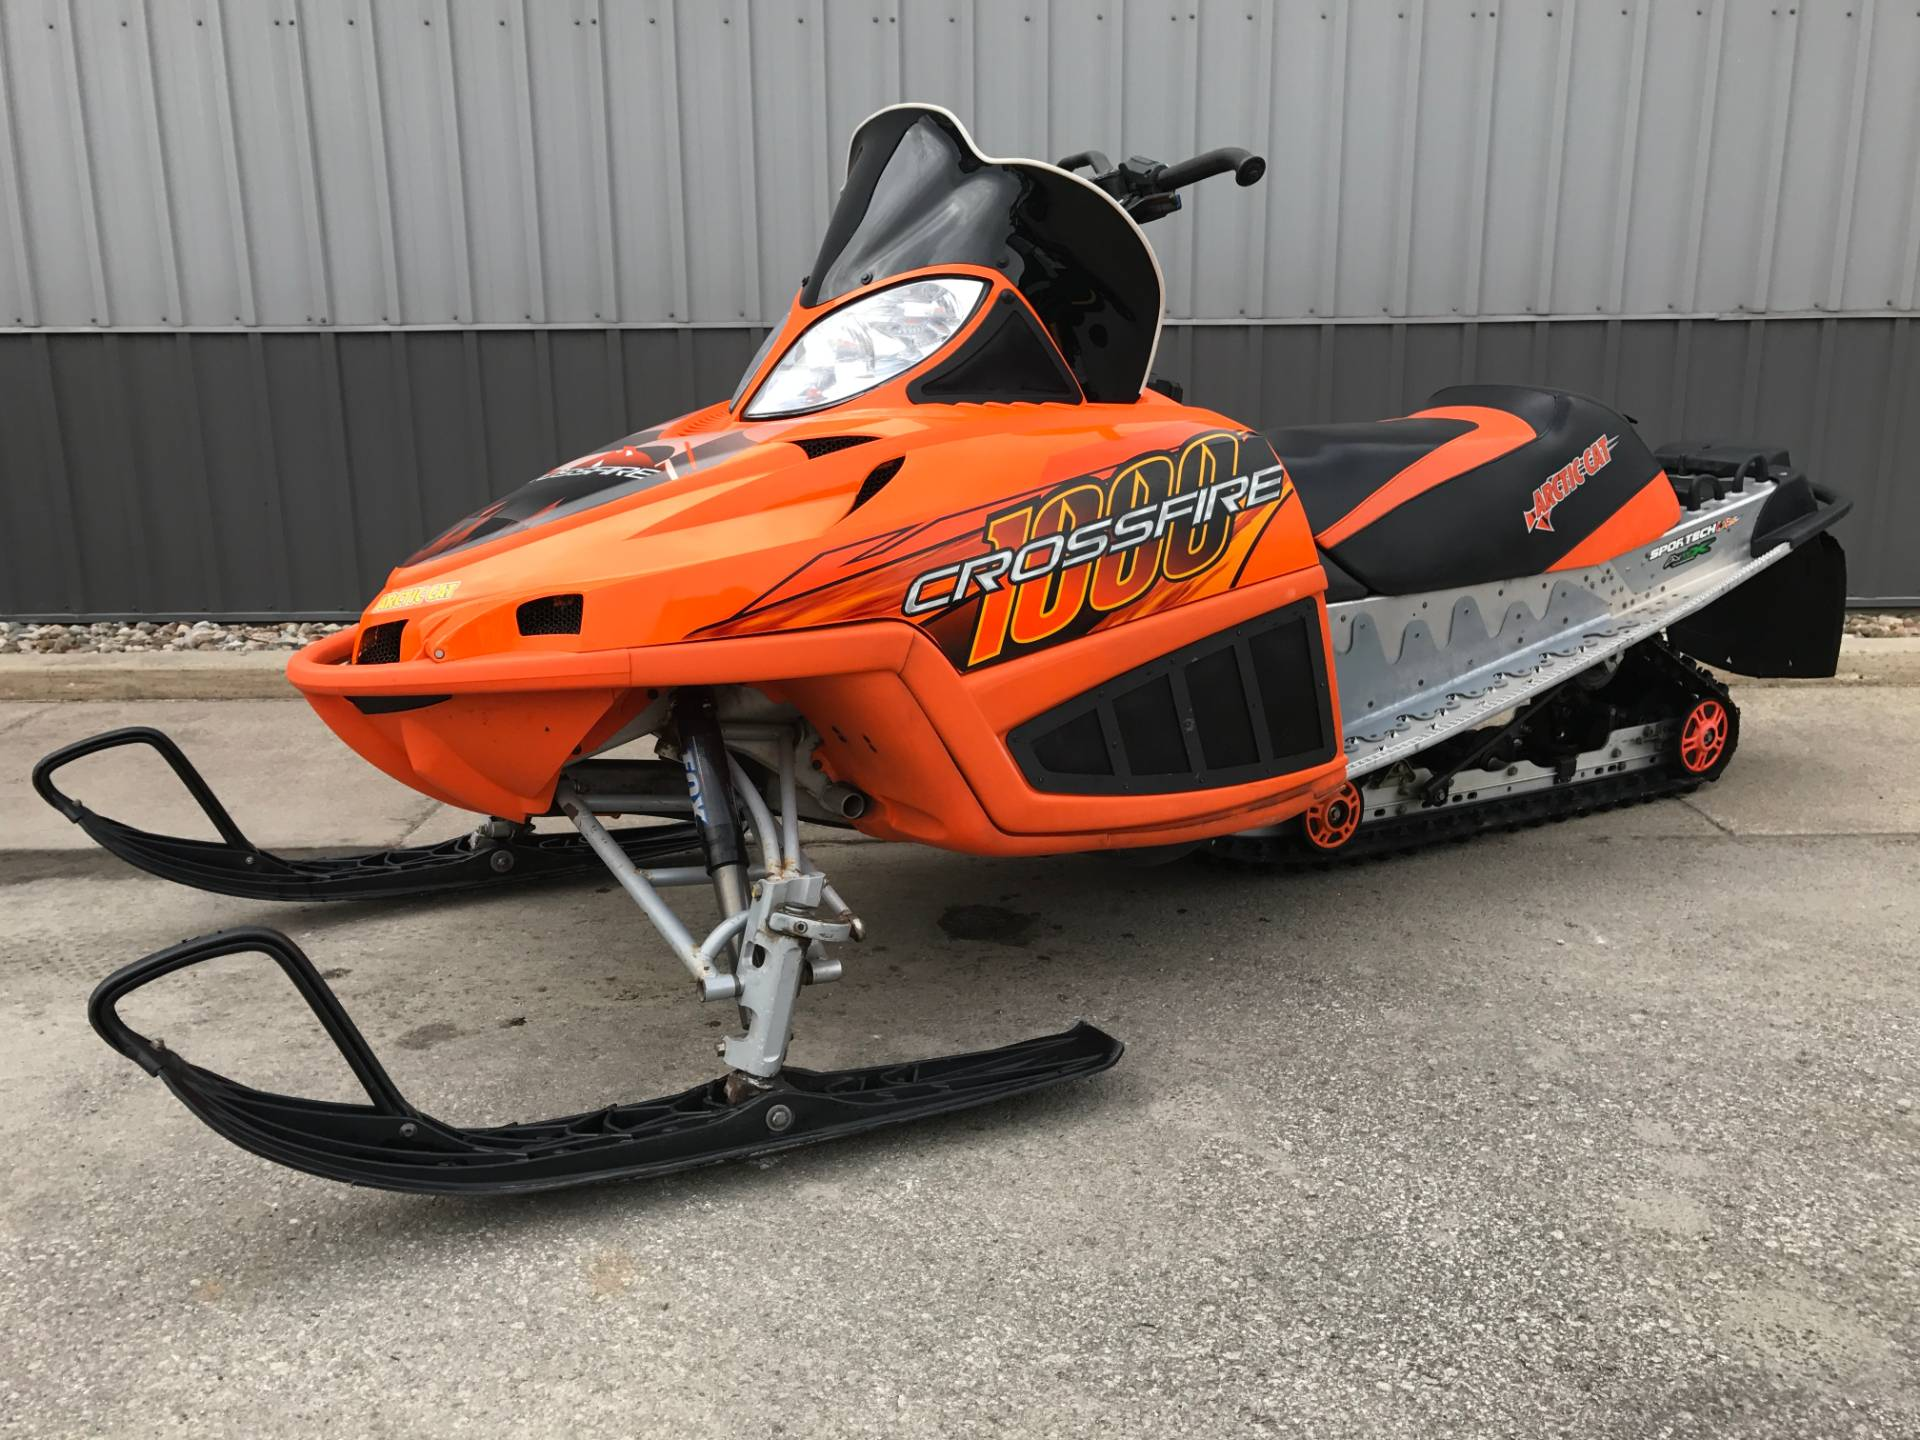 2007 Arctic Cat Crossfire 1000 for sale 3887